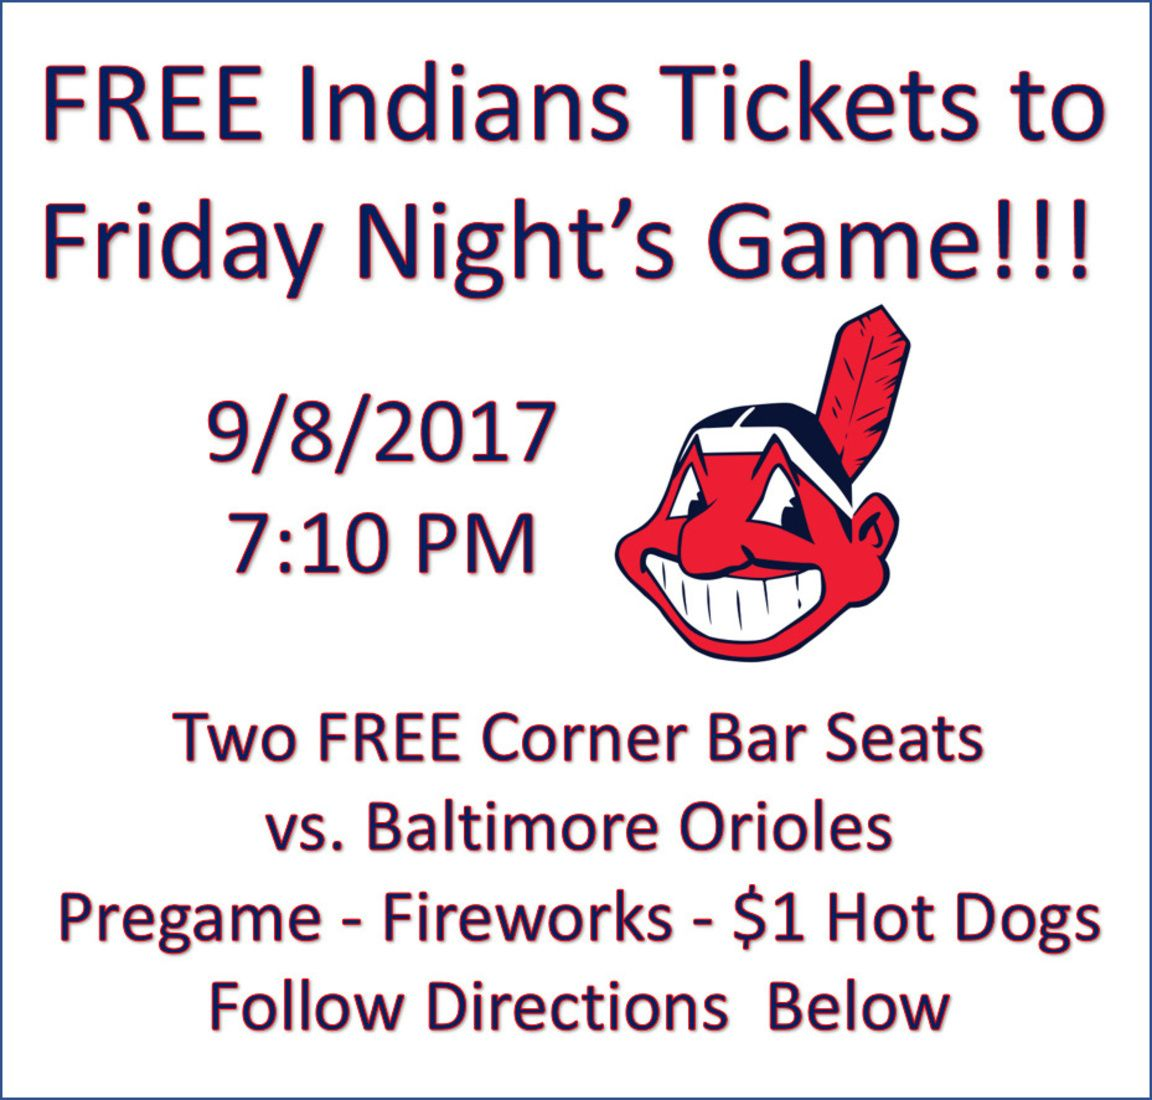 Premier Home Staging California Hgtv: Giving Away A Few Extra Tickets To The Indians Game